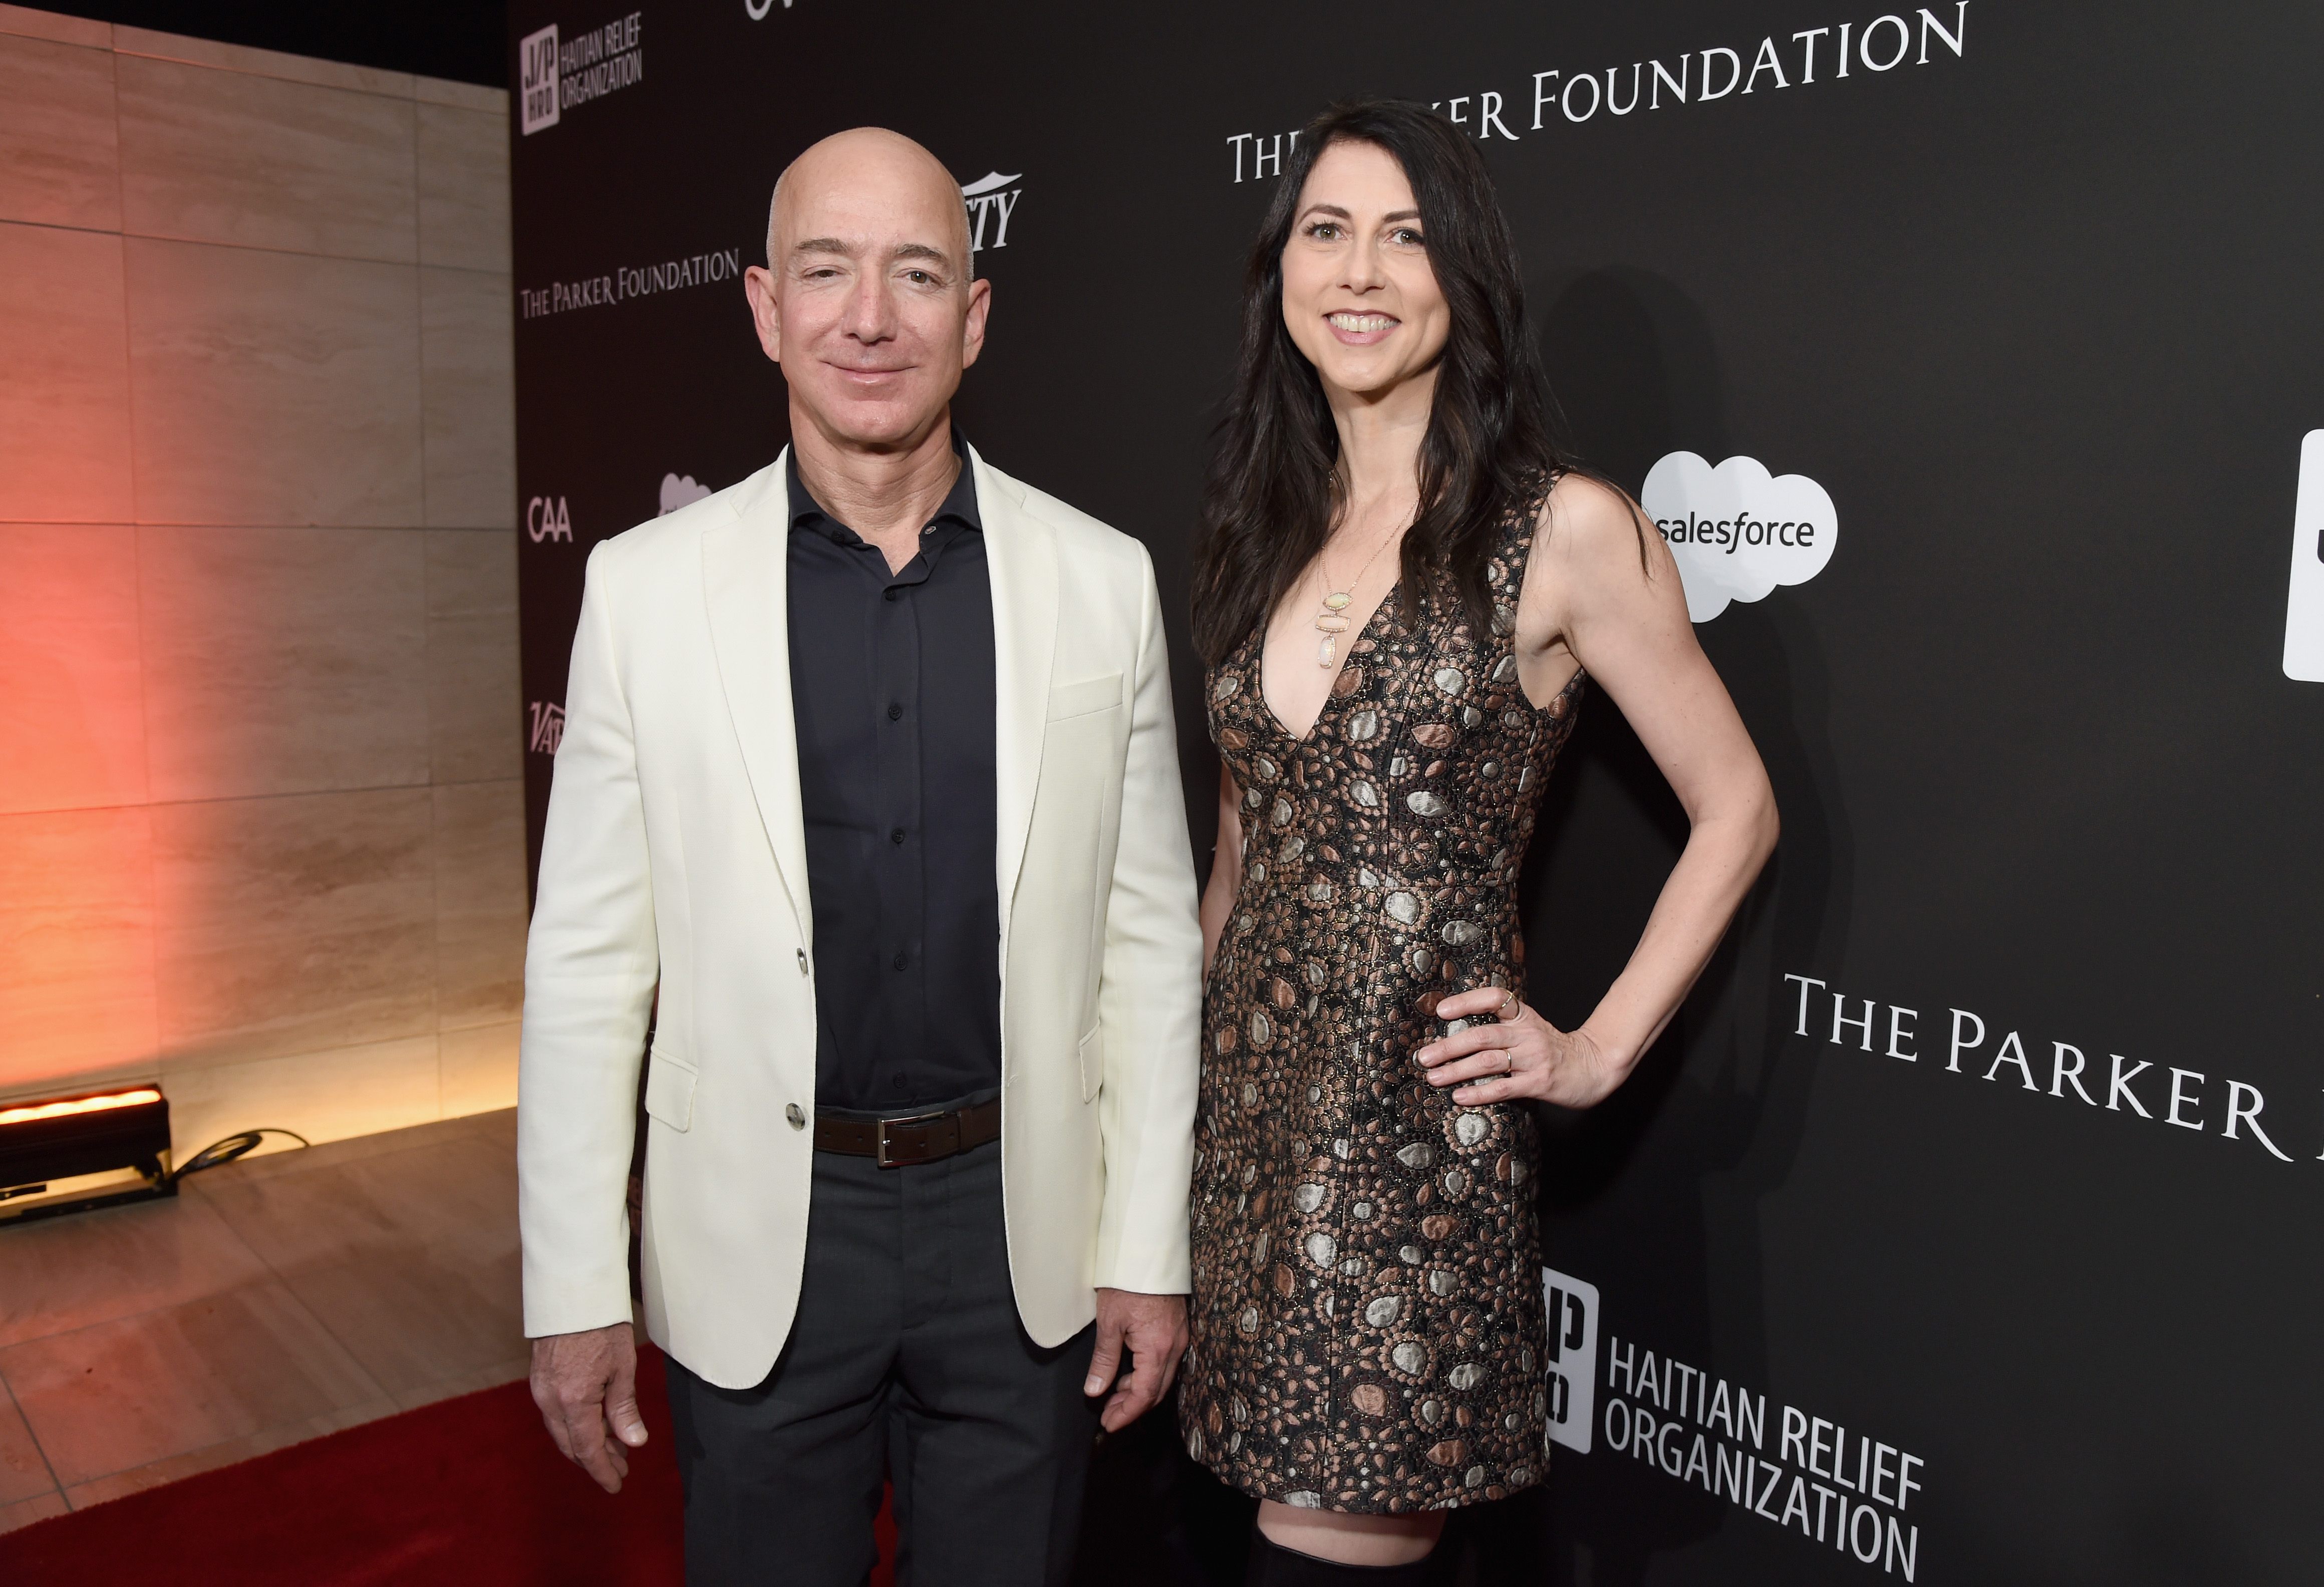 OS ANGELES, CA - JANUARY 06: Chief Executive Officer of Amazon Jeff Bezos (L) and MacKenzie Bezos attend the 7th Annual Sean Penn & Friends HAITI RISING Gala benefiting J/P Haitian Relief Organization on January 6, 2018 in Hollywood, California. (Photo by Michael Kovac/Getty Images for for J/P HRO Gala)